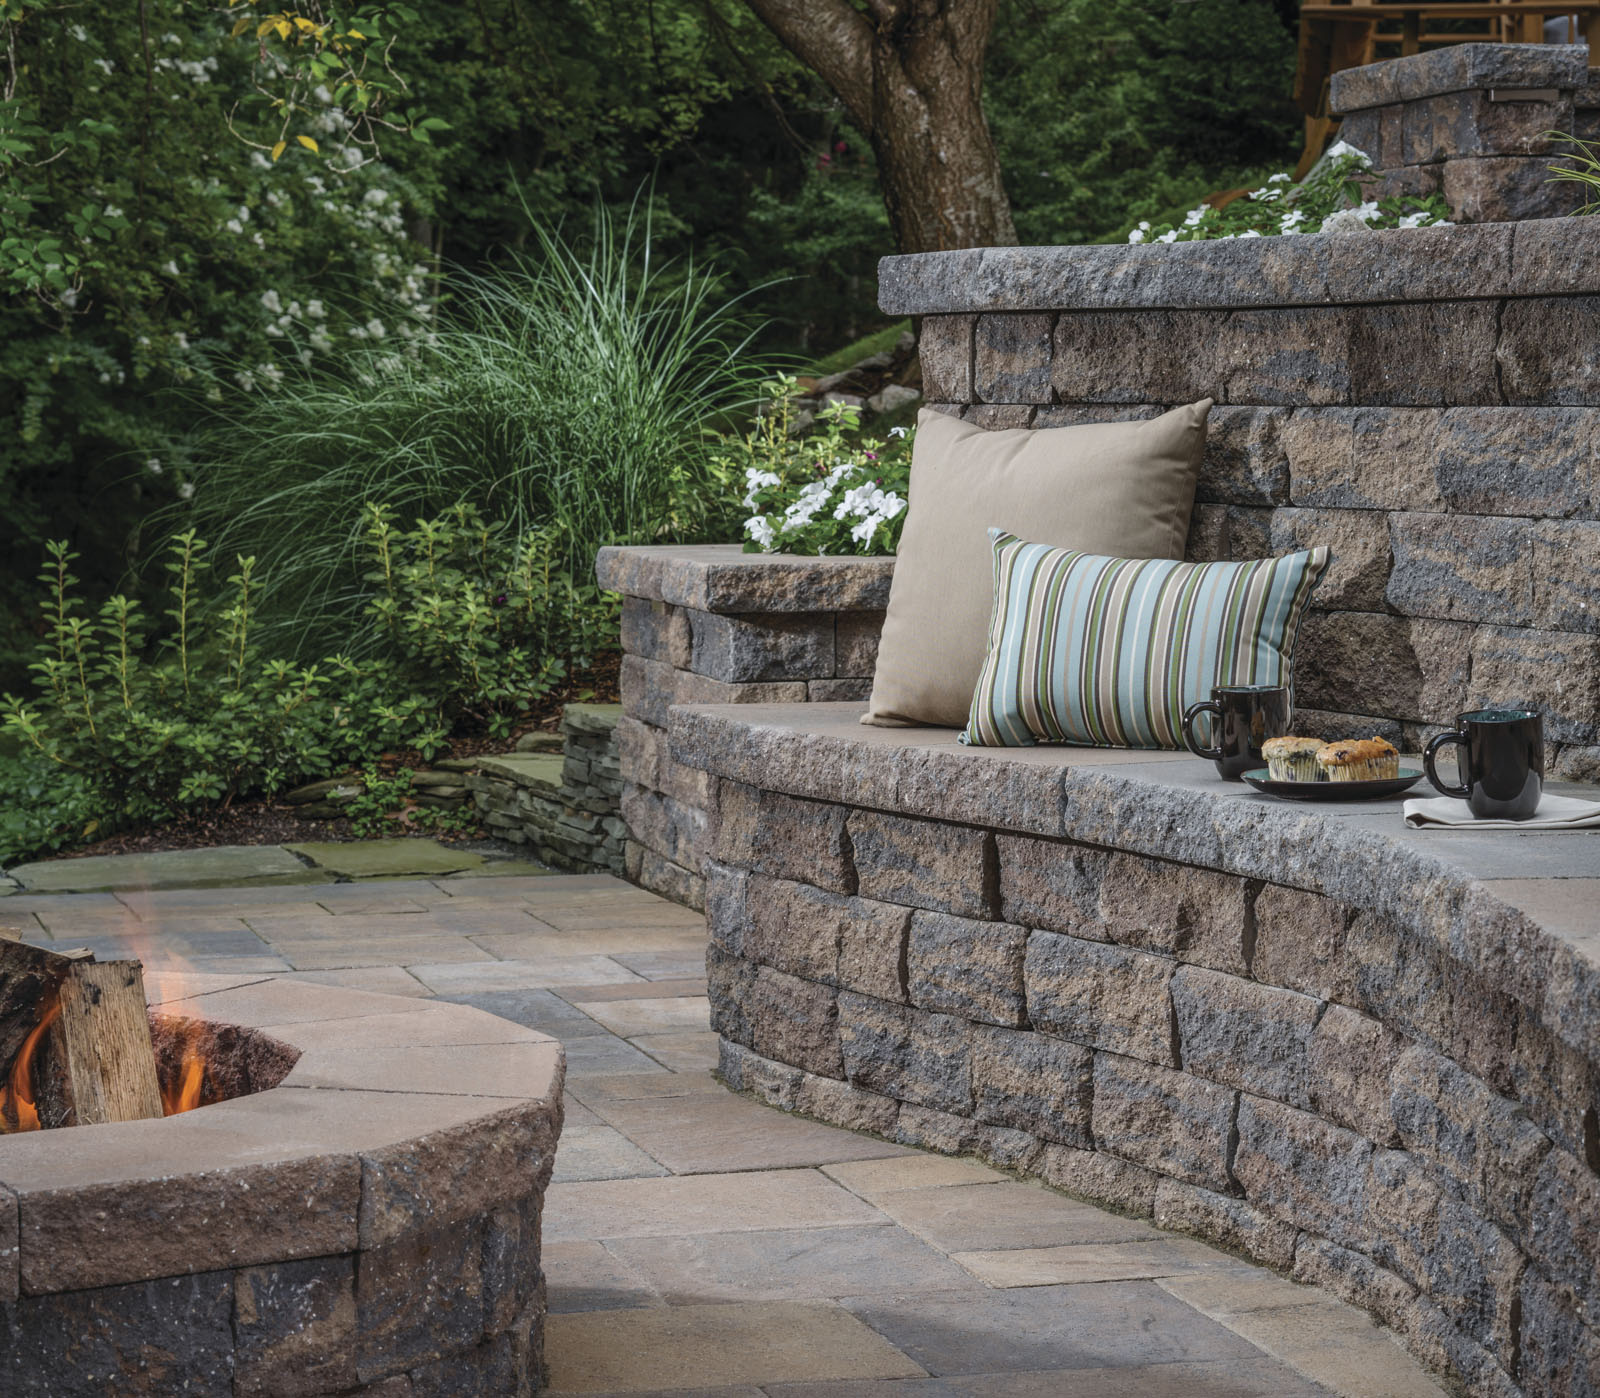 Seat Wall Design Ideas - Outdoor Living by Belgard on Patio Stone Wall Ideas id=41207